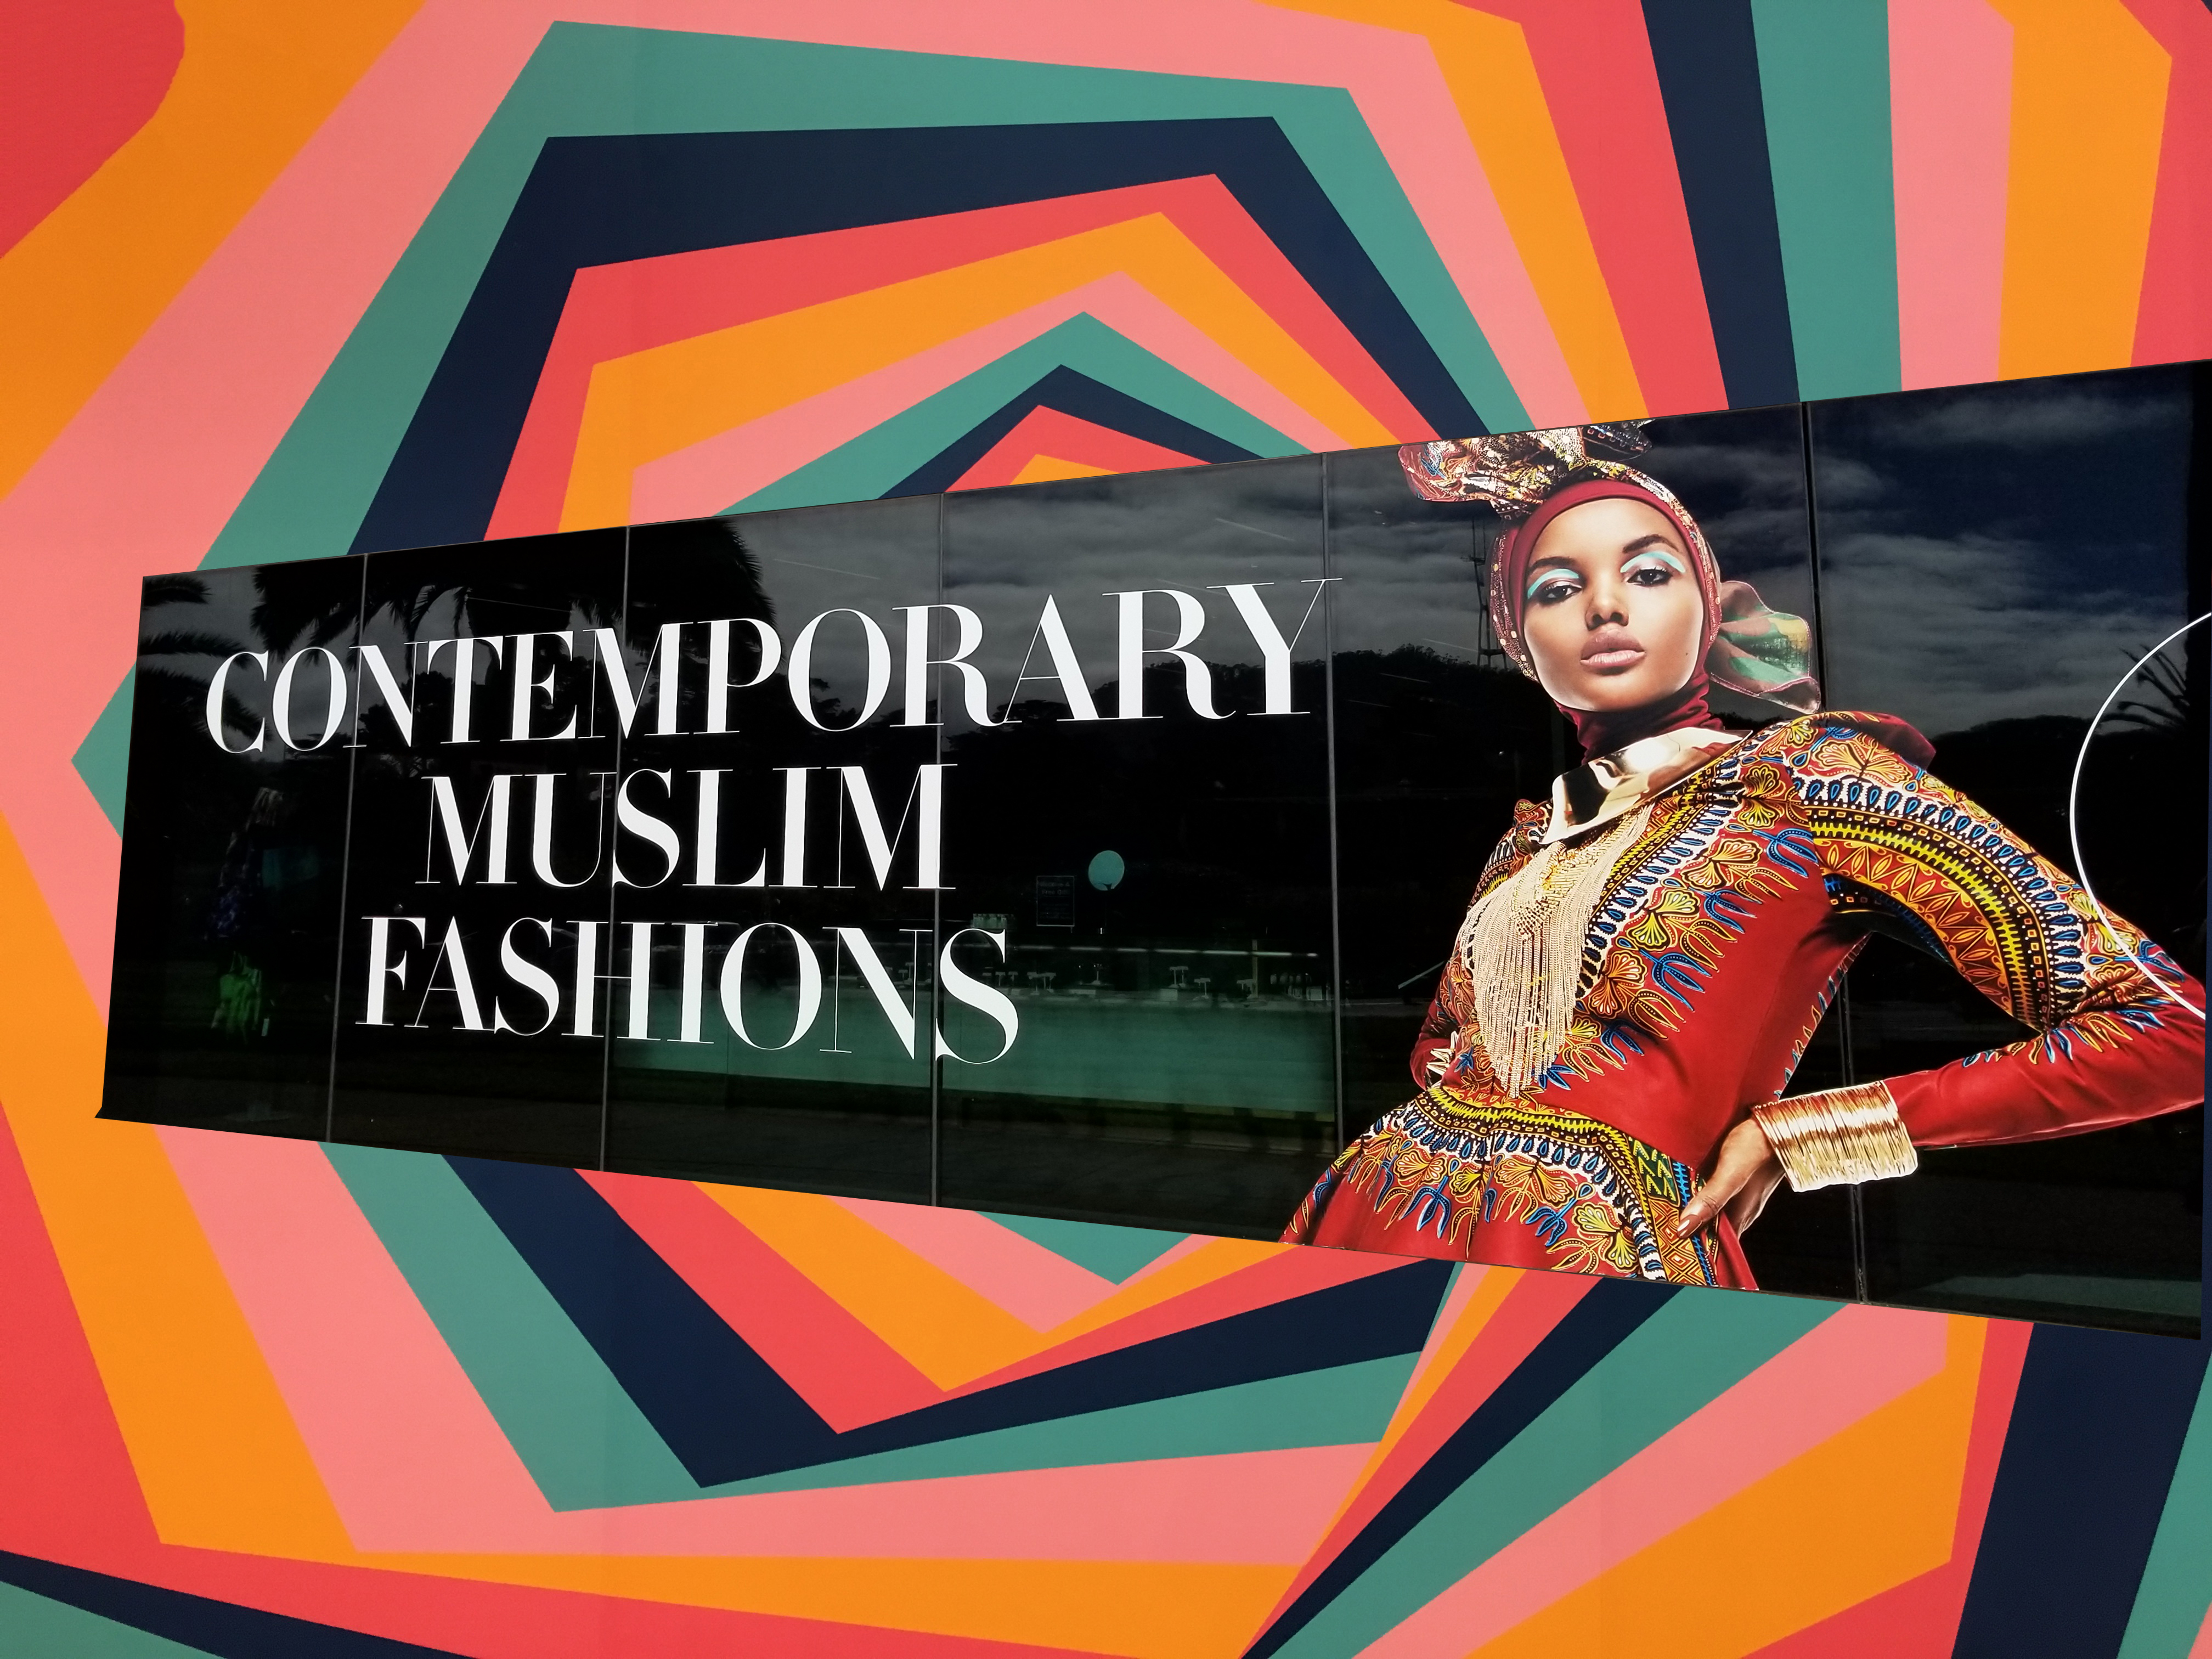 A museum exhibit centered on modern Muslim fashion helped redefine my idea of modesty